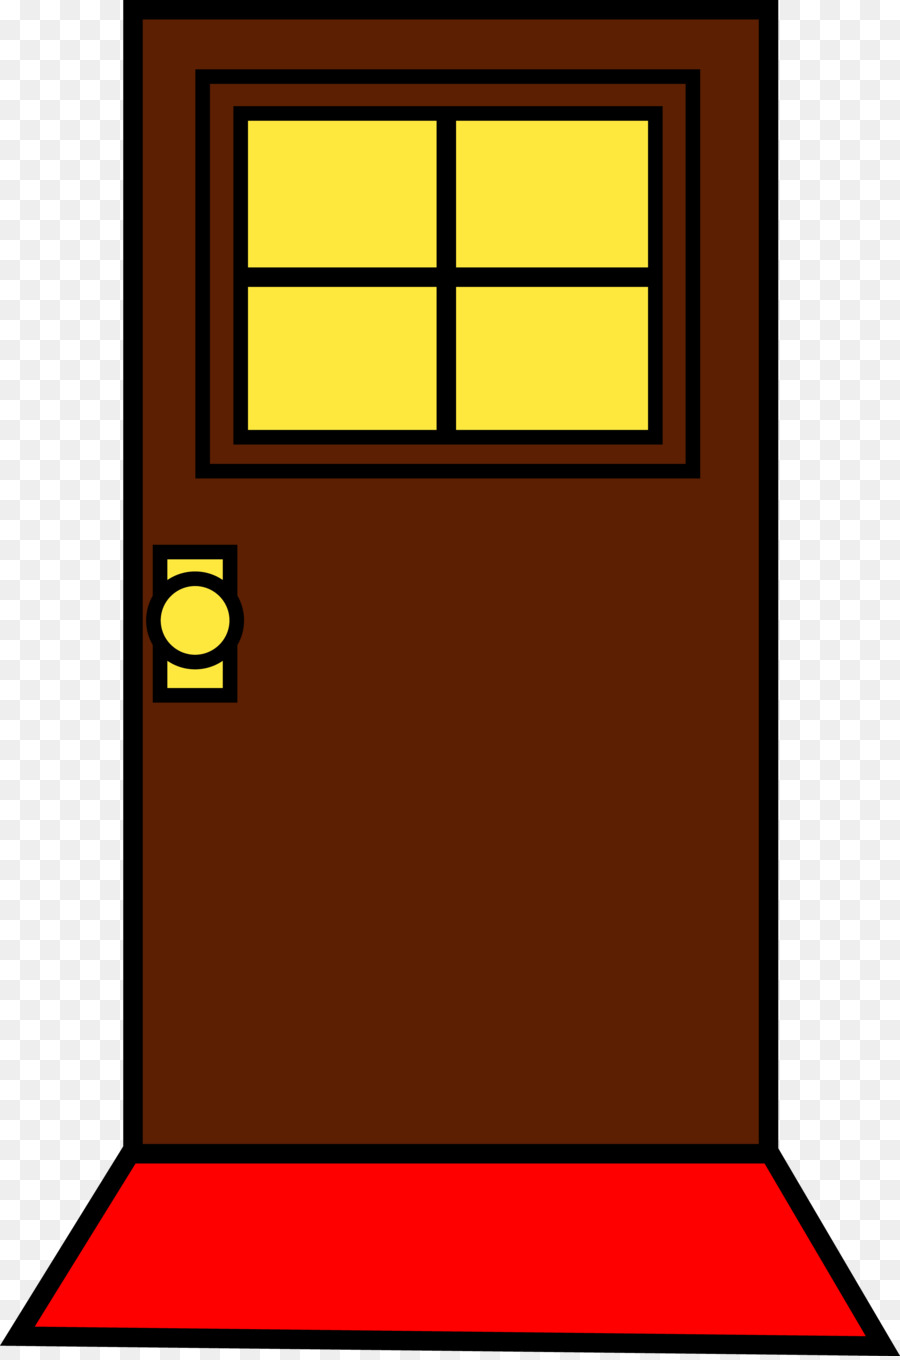 Screen door clipart png freeuse Red Background png download - 3856*5811 - Free Transparent ... png freeuse